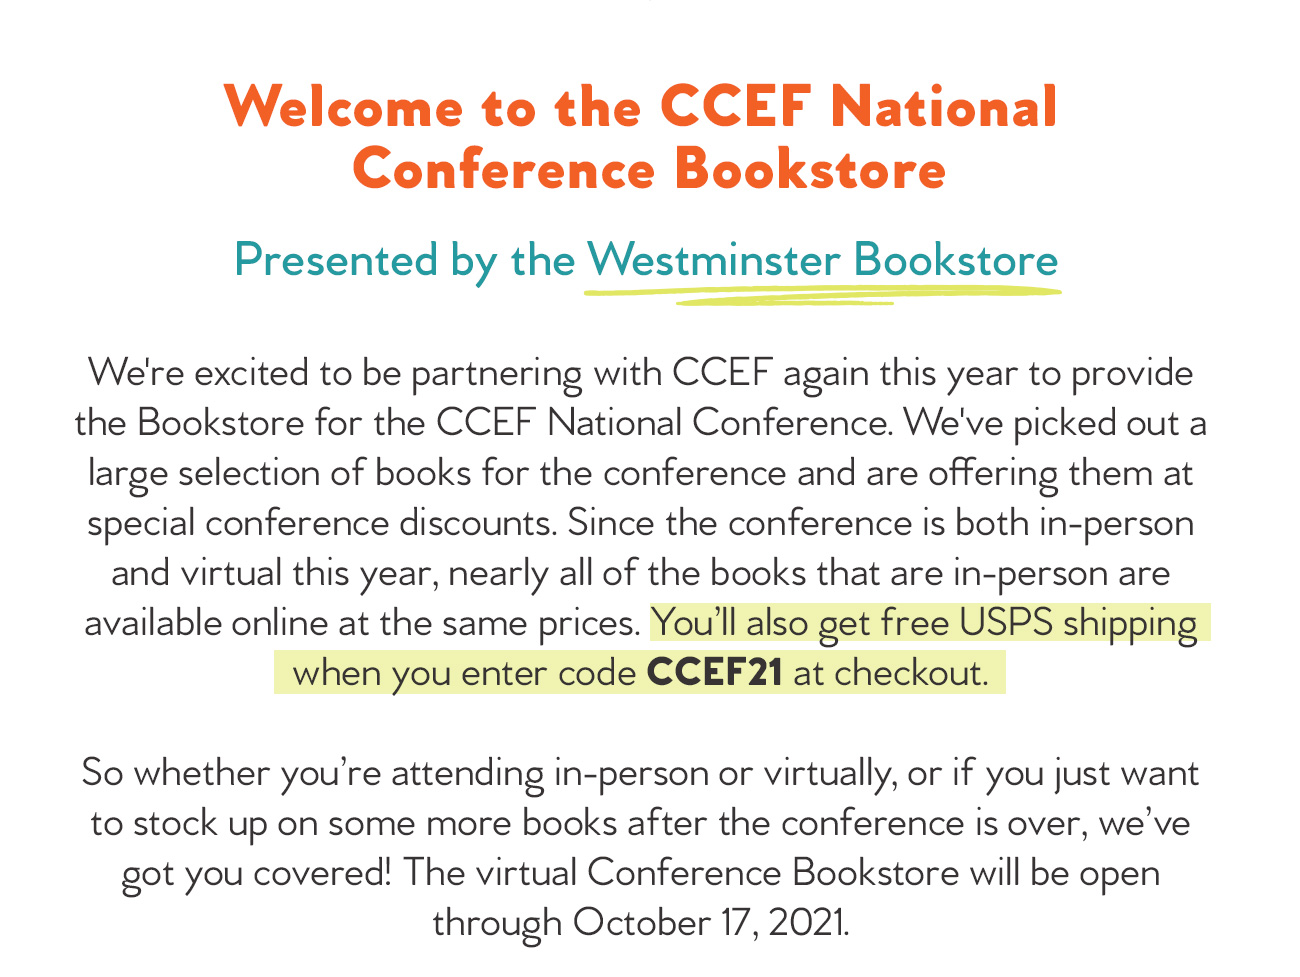 Welcome to Conference Bookstore